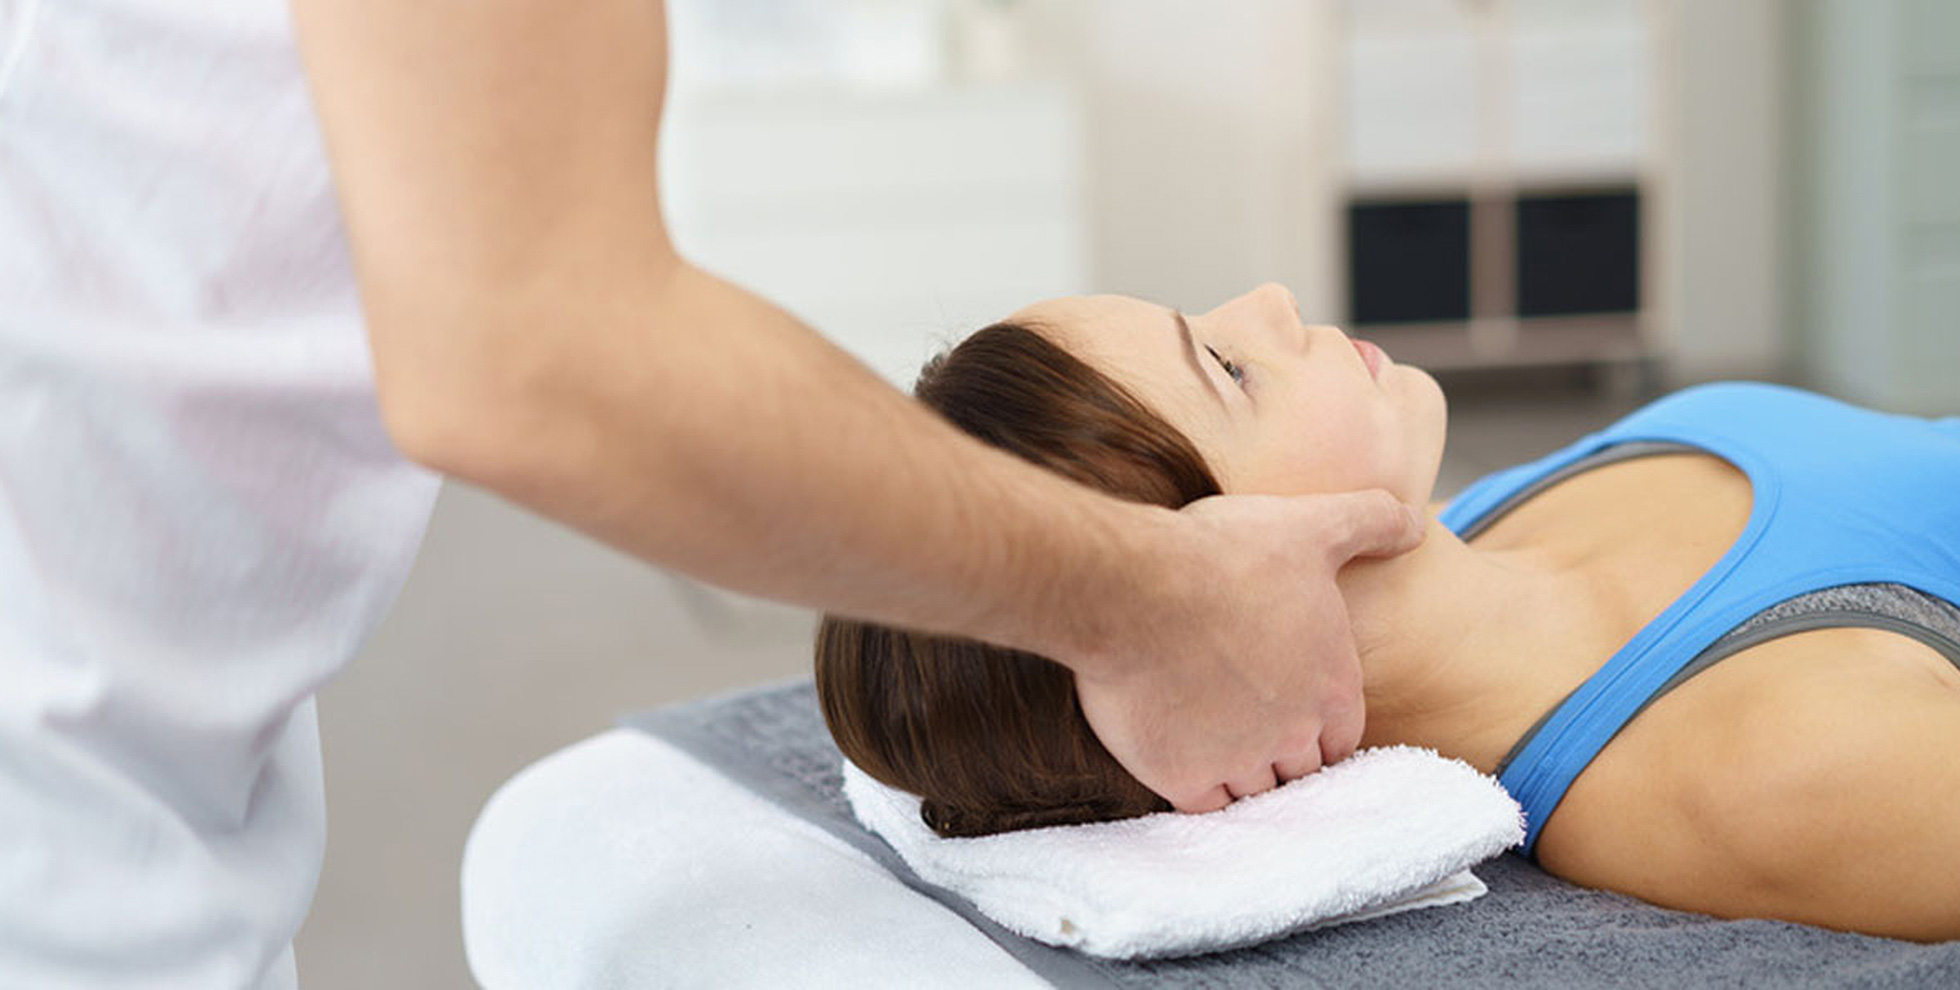 Physiotherapy-Woman-receiving-physio-treatment-to-her-neck2